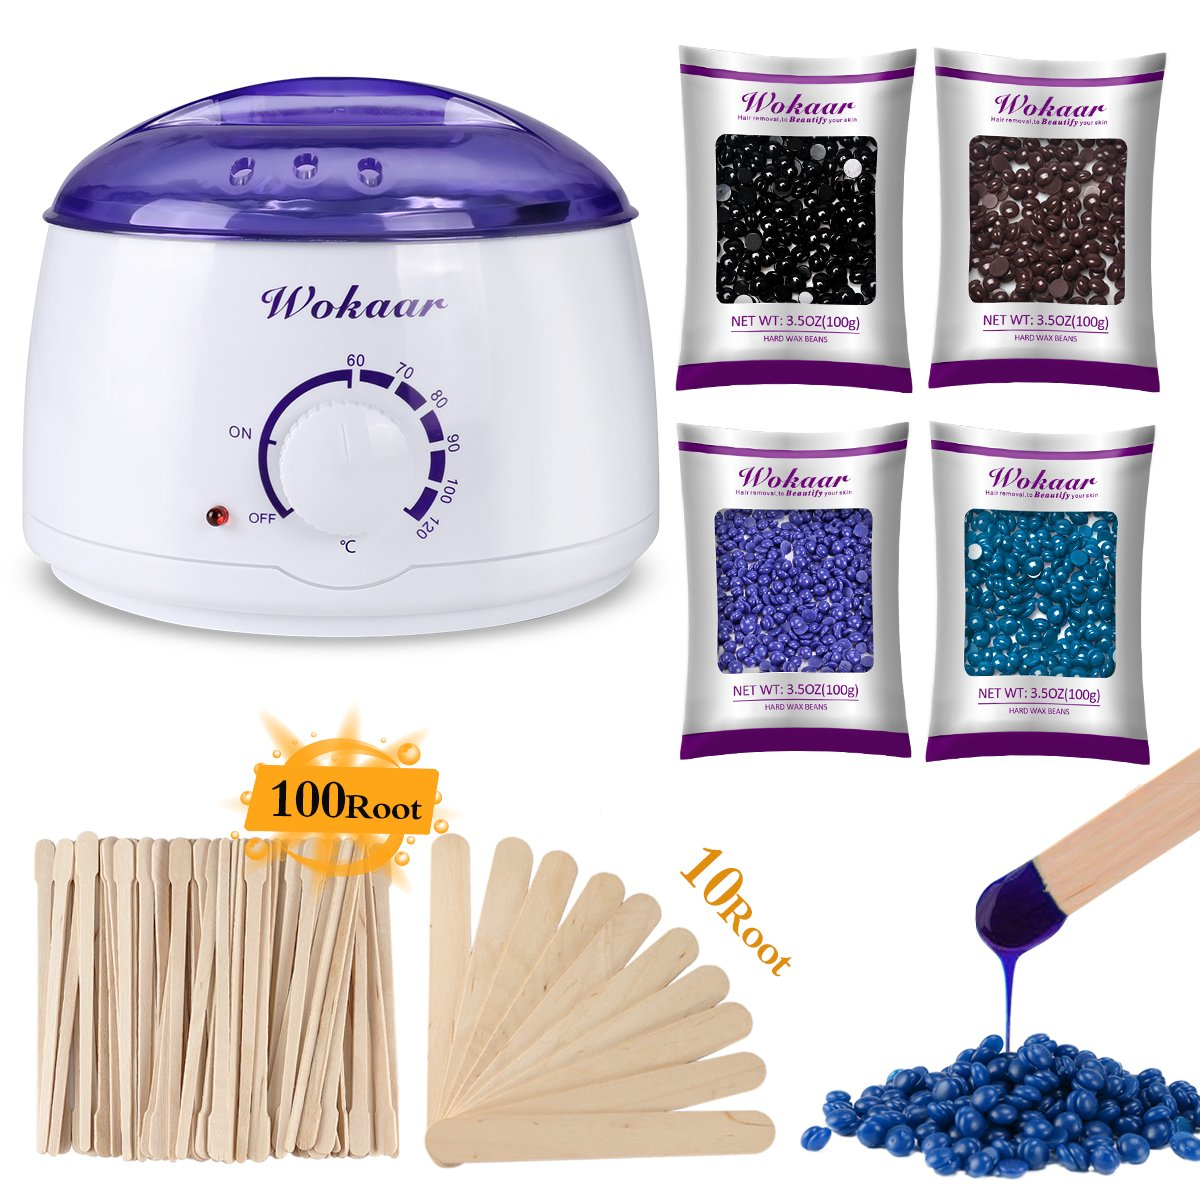 Wax Warmer Hair Removal Waxing Kit with 4 Flavors Hard Wax Beans + 10 Wax Applicator Sticks and 100 Small Eyebrow Removal Sticks